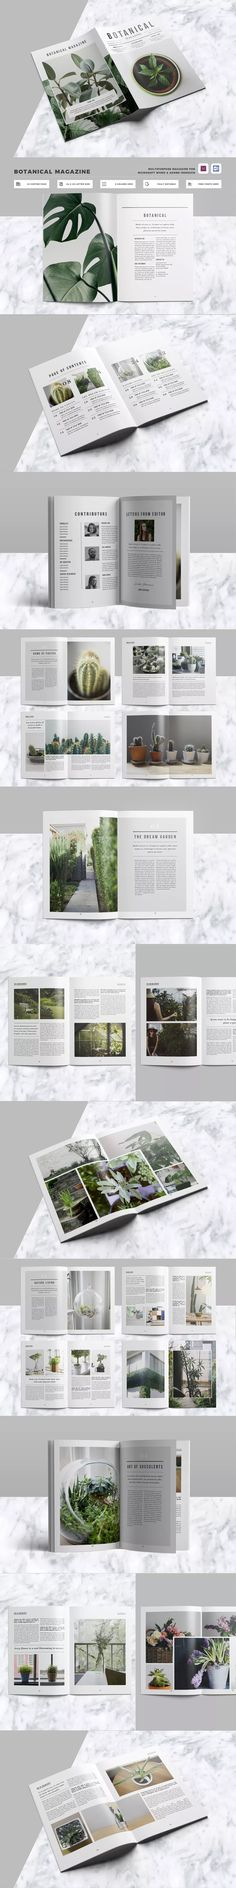 layout, table of contents Page Layout Design, Book Design, Editorial Layout, Editorial Design, Layout Inspiration, Graphic Design Inspiration, Brochure Design, Branding Design, Presentation Layout